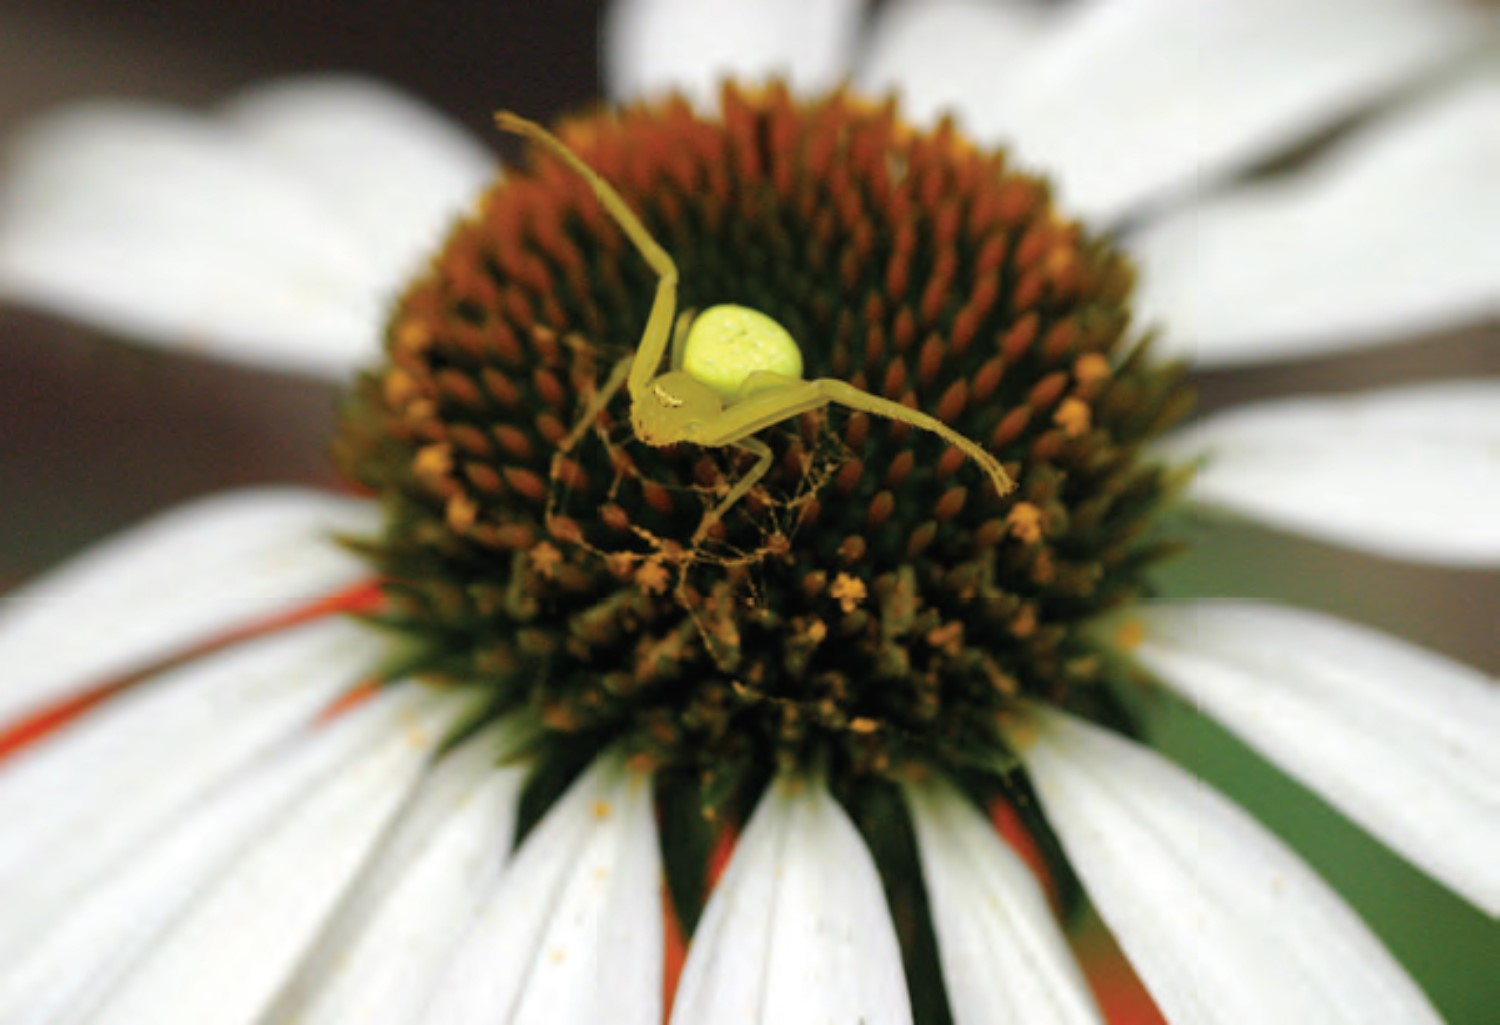 Crab Spider Species